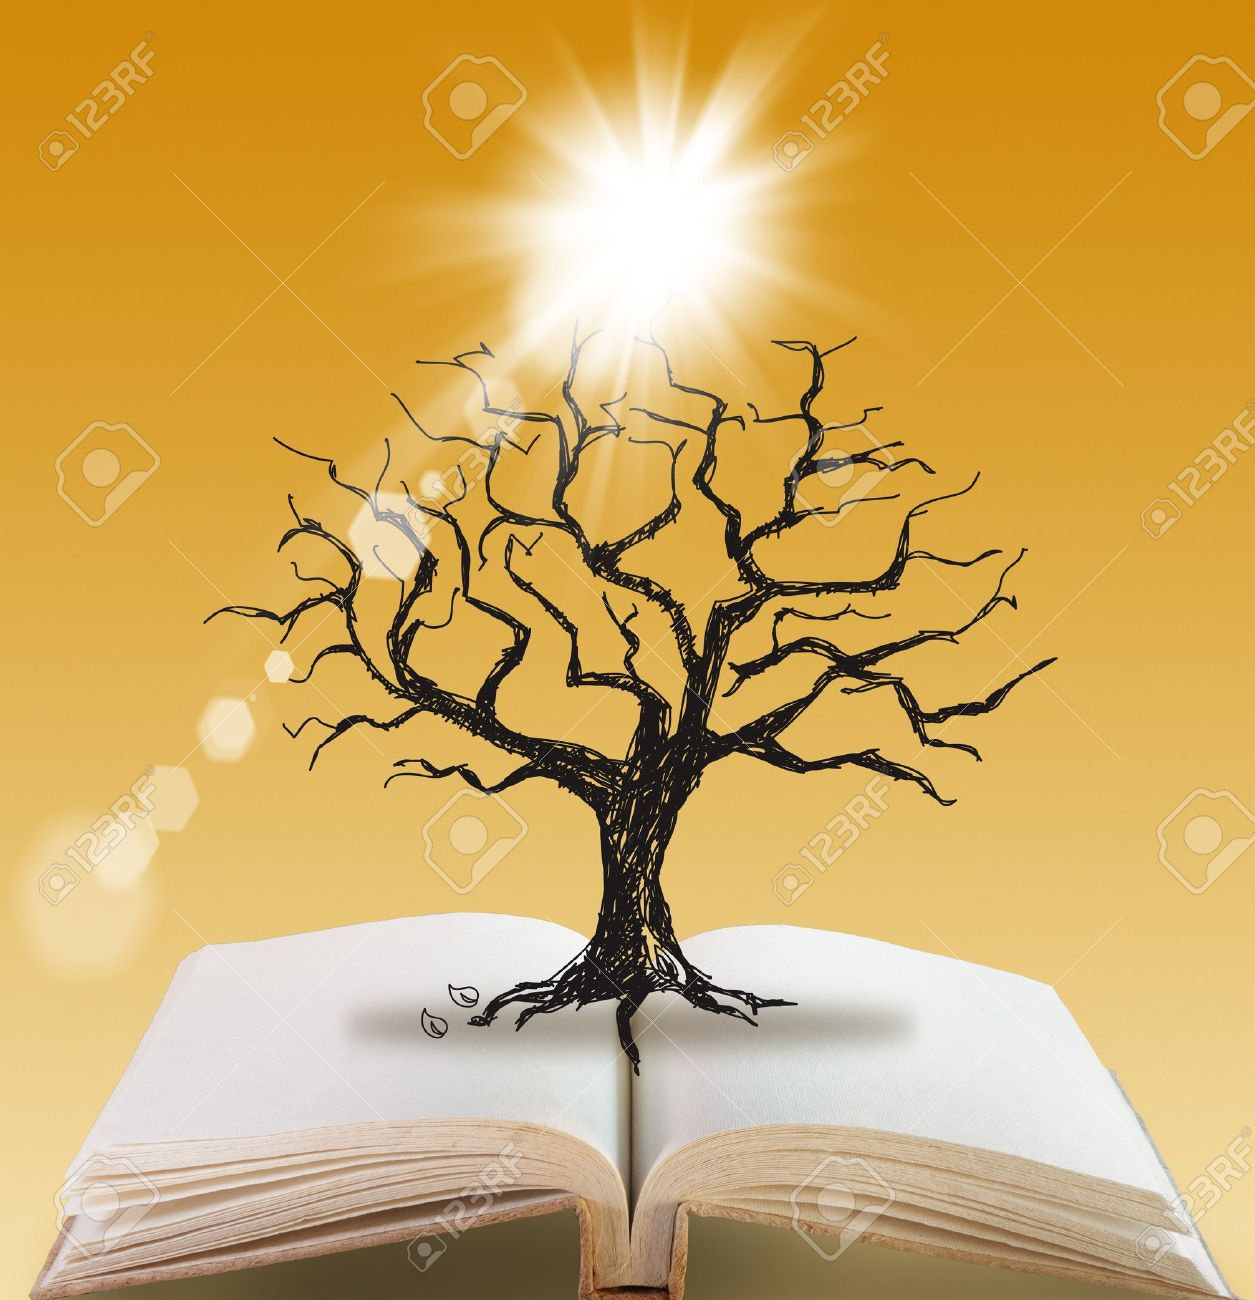 open book of Silhouette dead tree without leaves - 16096468